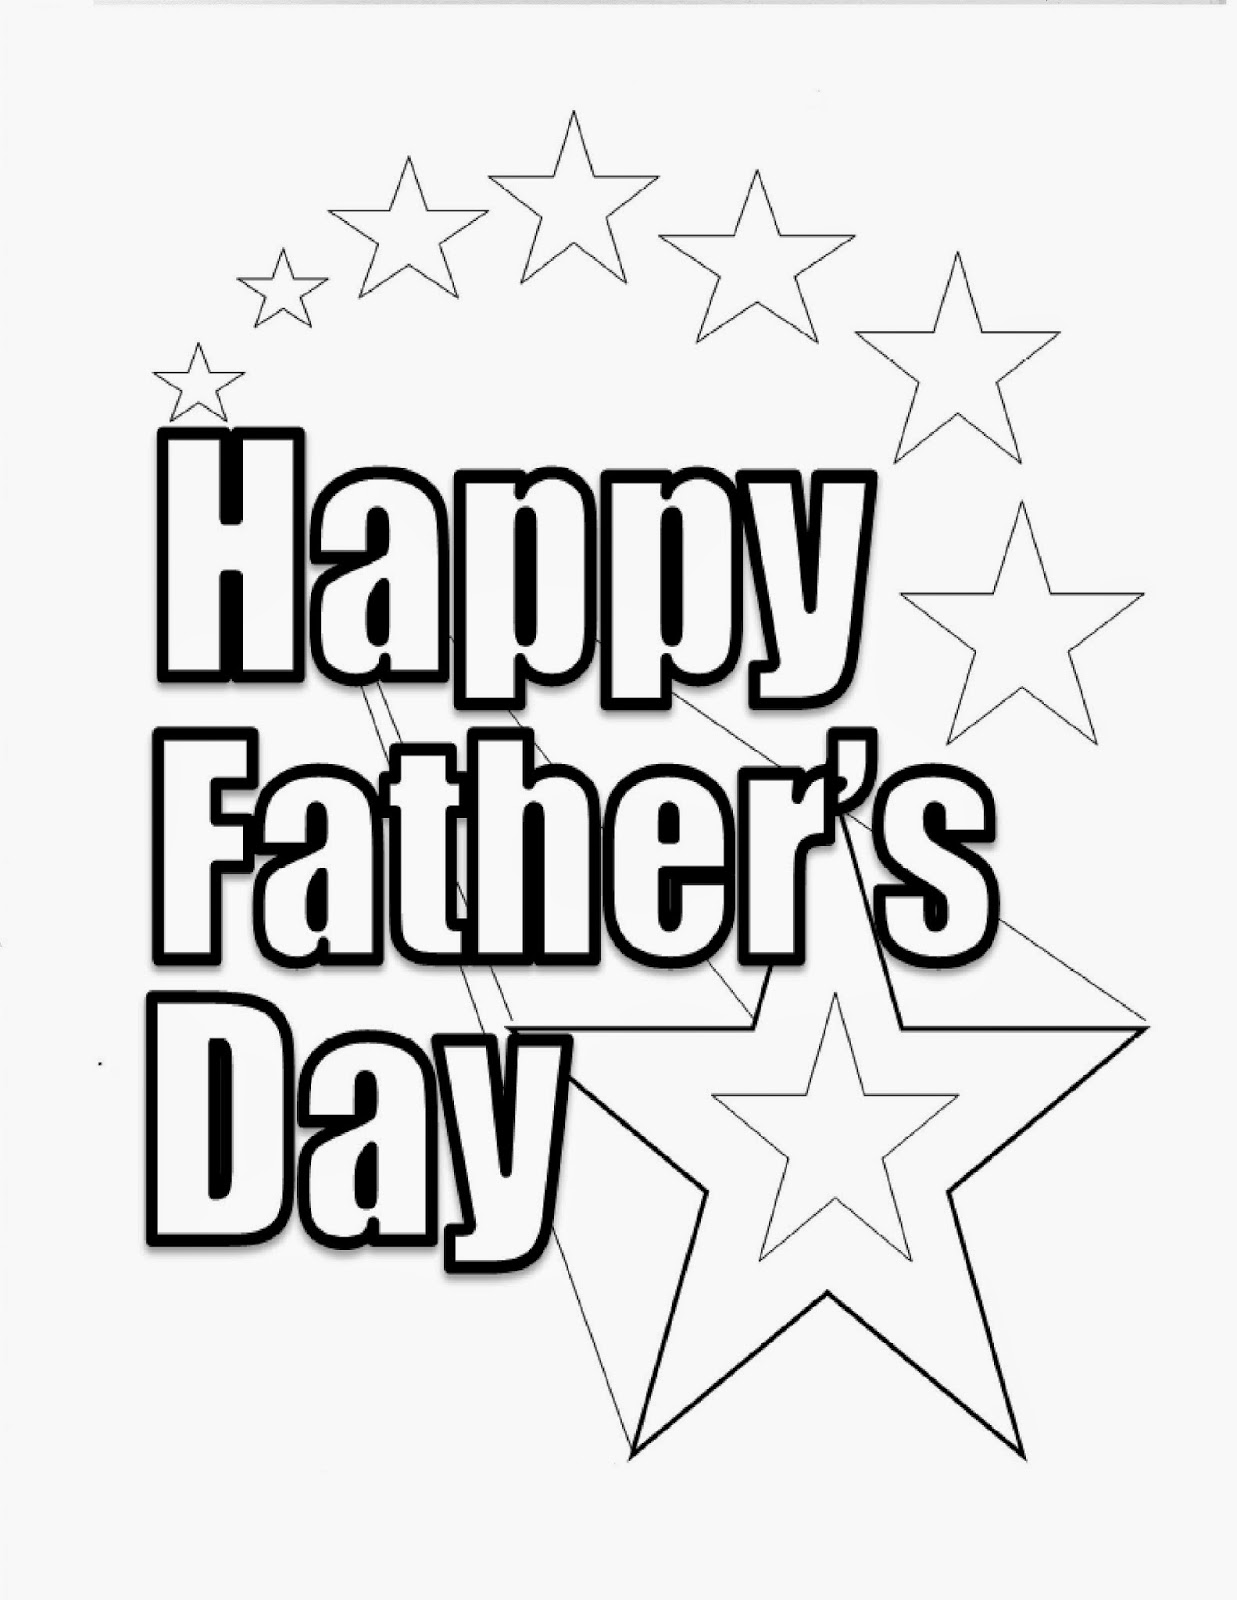 Happy Father S Day Worksheet : Let it shine father s day coloring pages